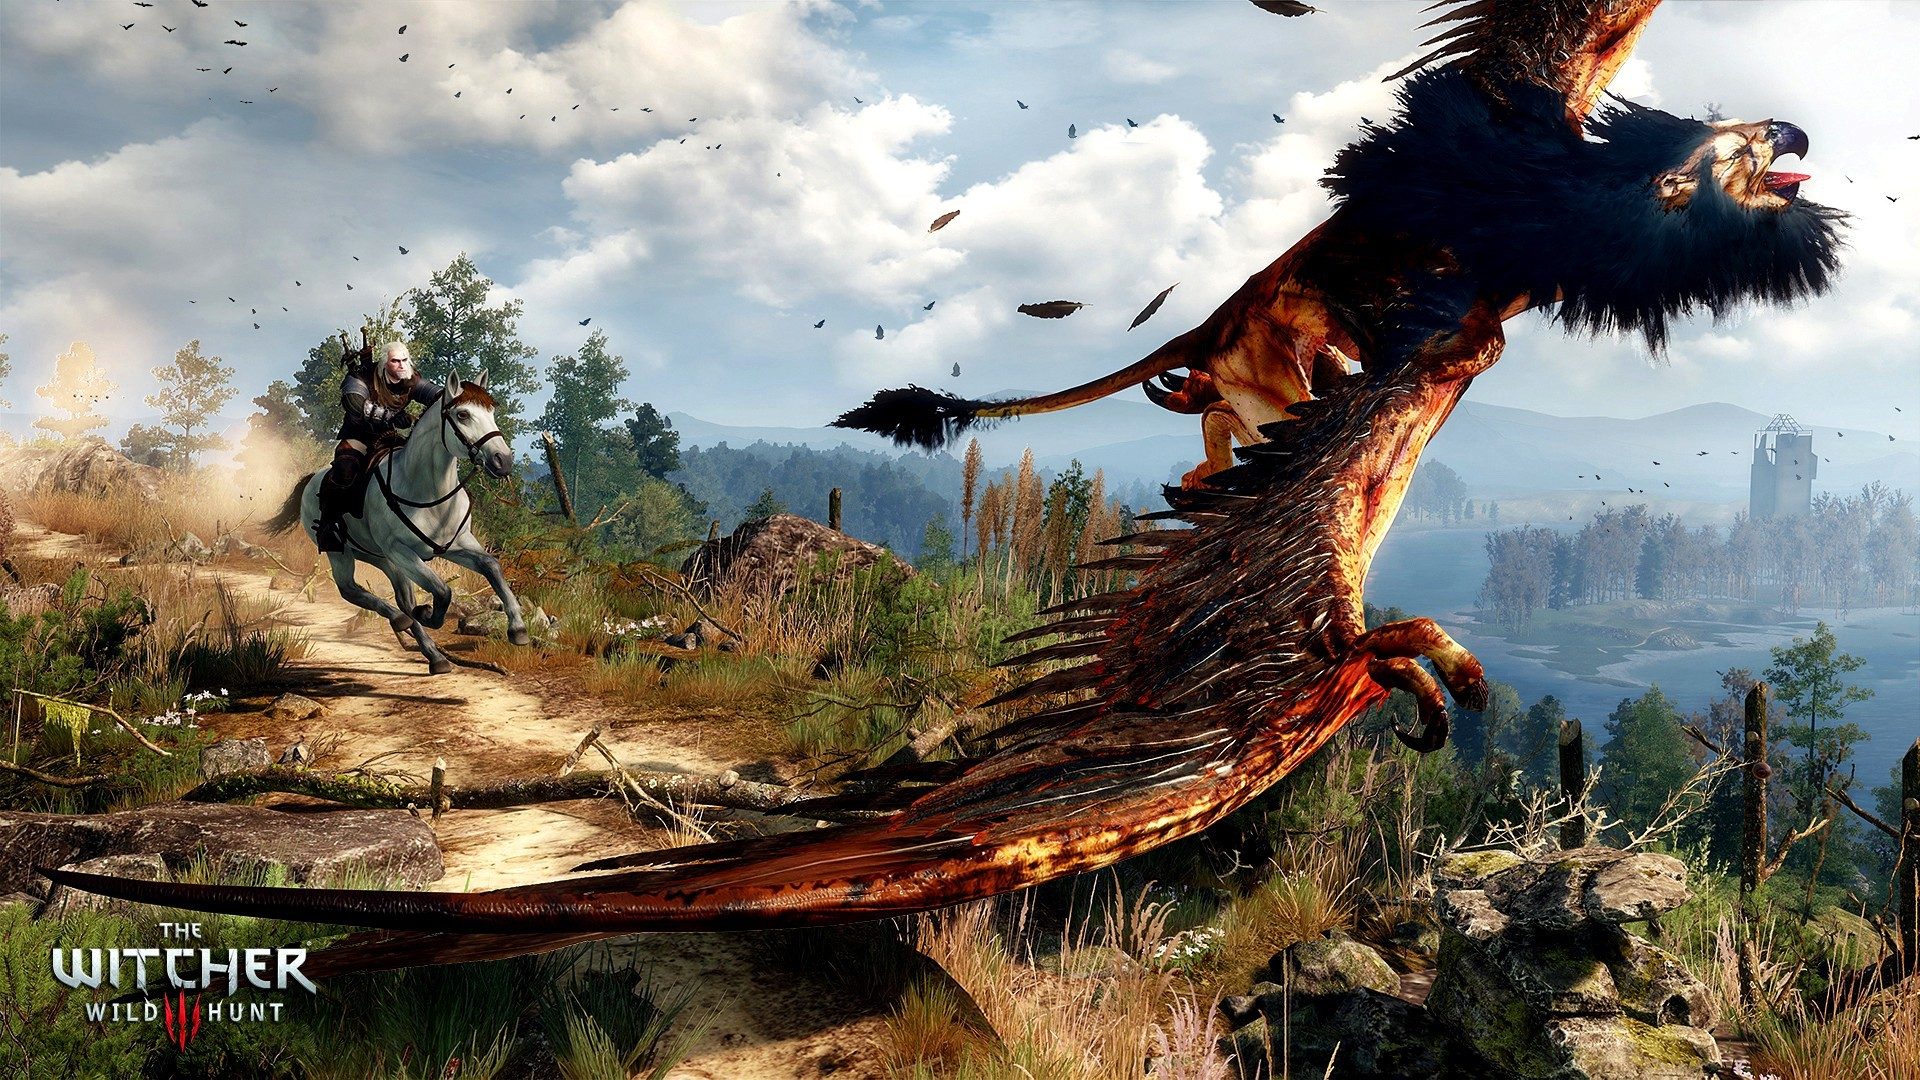 The Witcher 3: Wild Hunt Wallpapers Images Photos Pictures Backgrounds